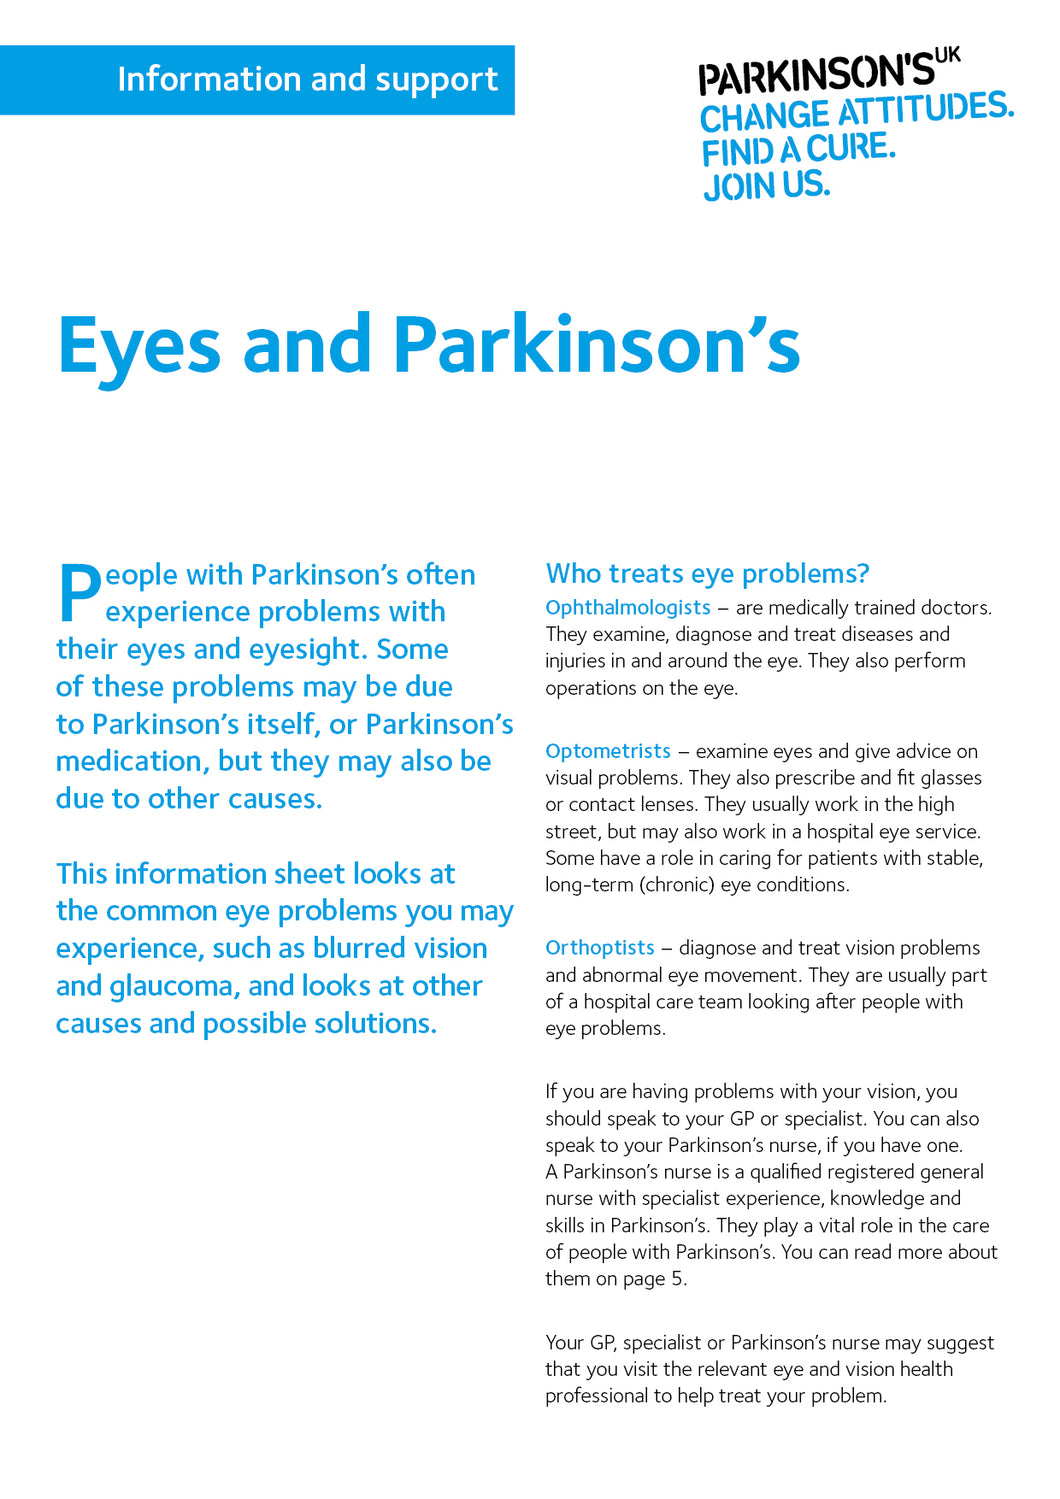 Eyes and Parkinson's - Parkinson's shop